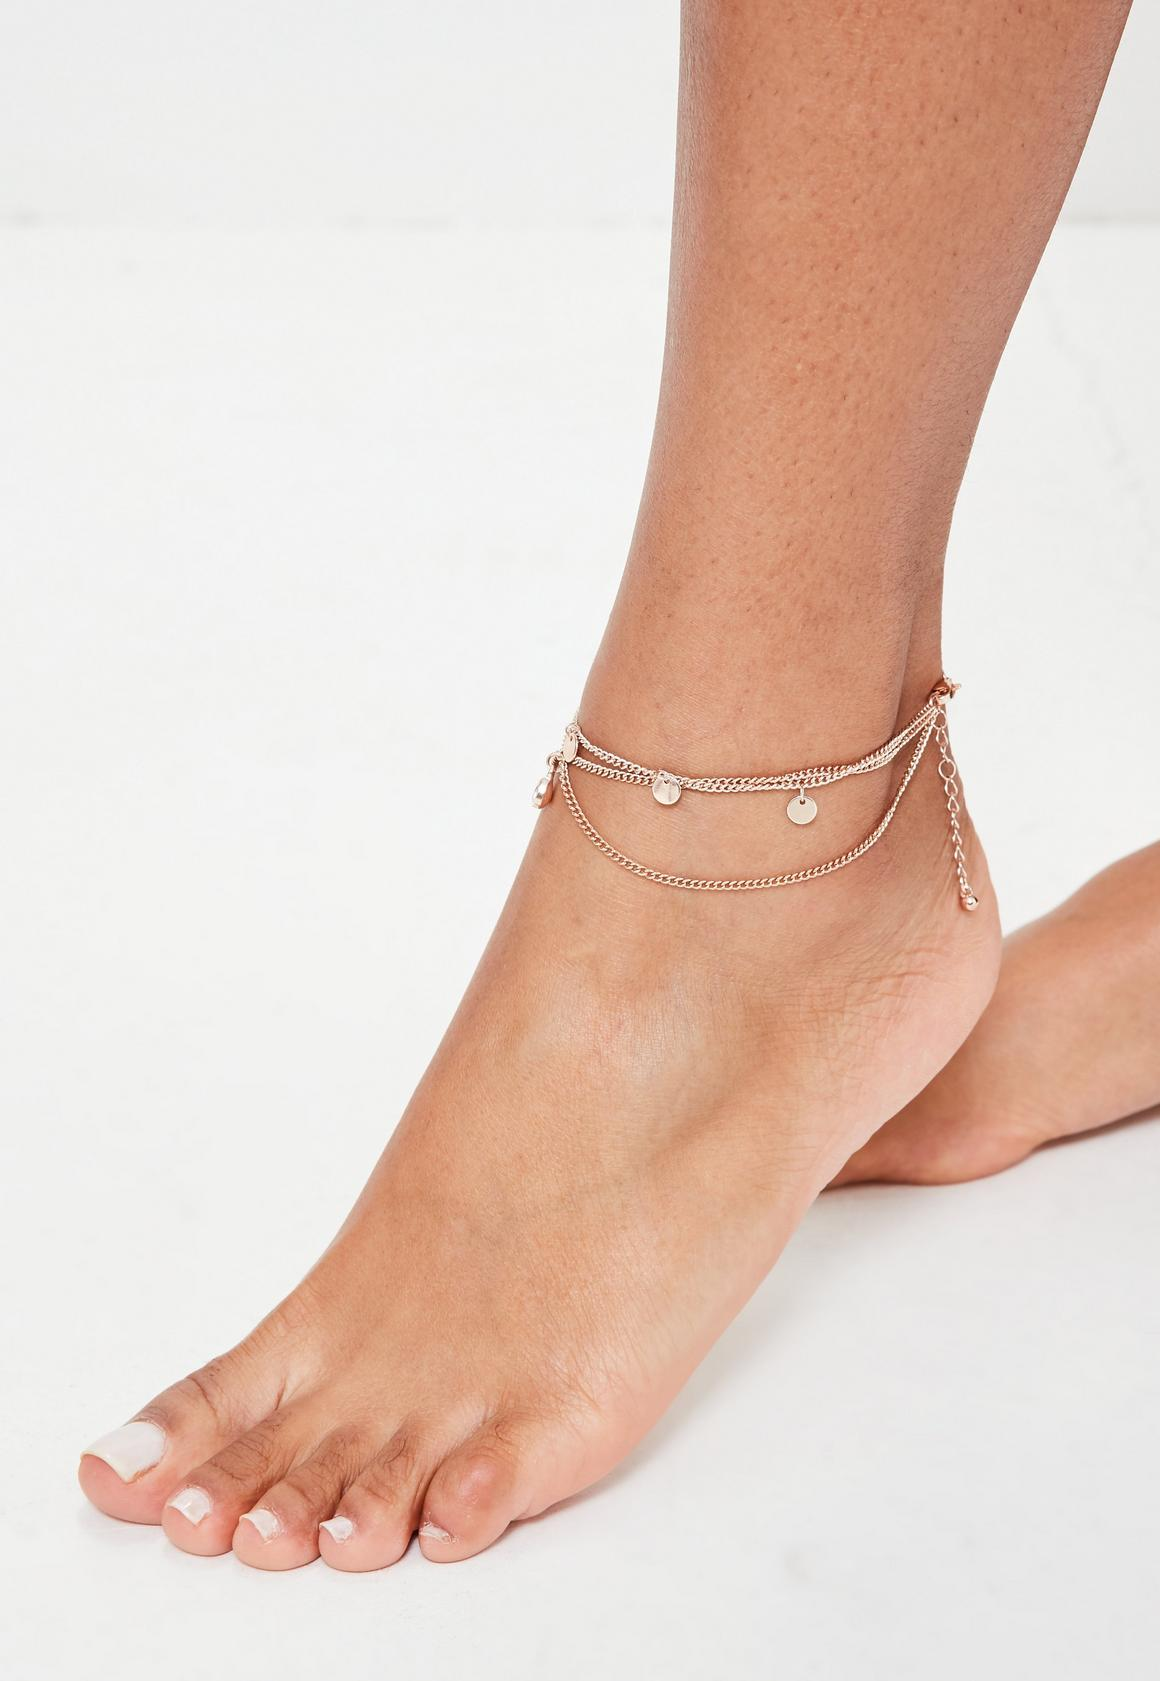 silver for buy in anklet online india product women shop